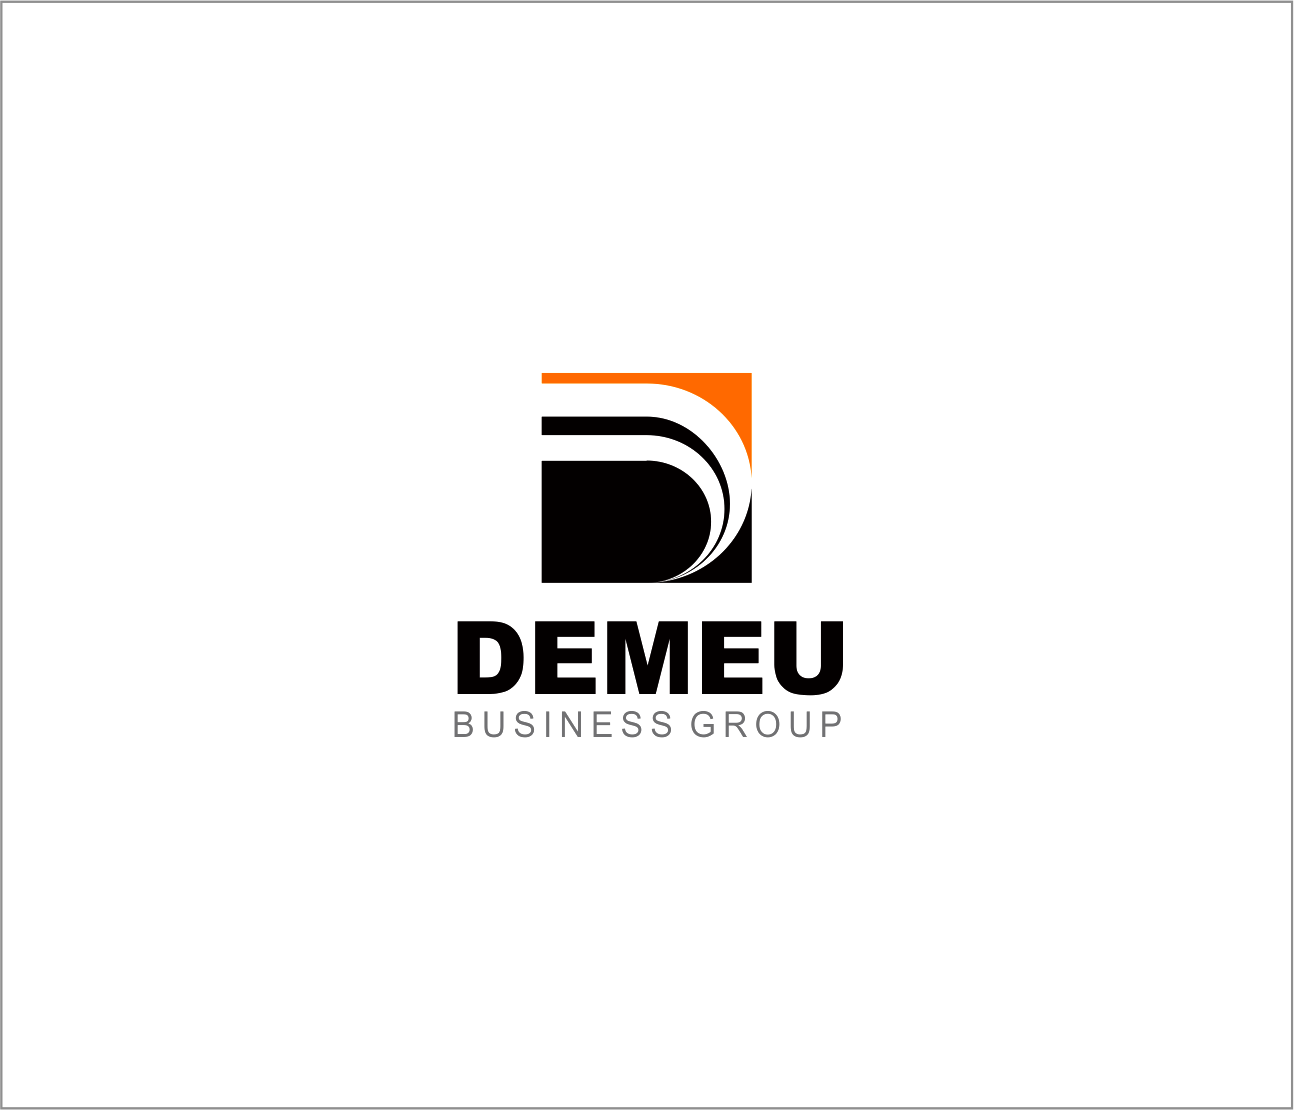 Logo Design by Armada Jamaluddin - Entry No. 30 in the Logo Design Contest Captivating Logo Design for DEMEU Business Group.